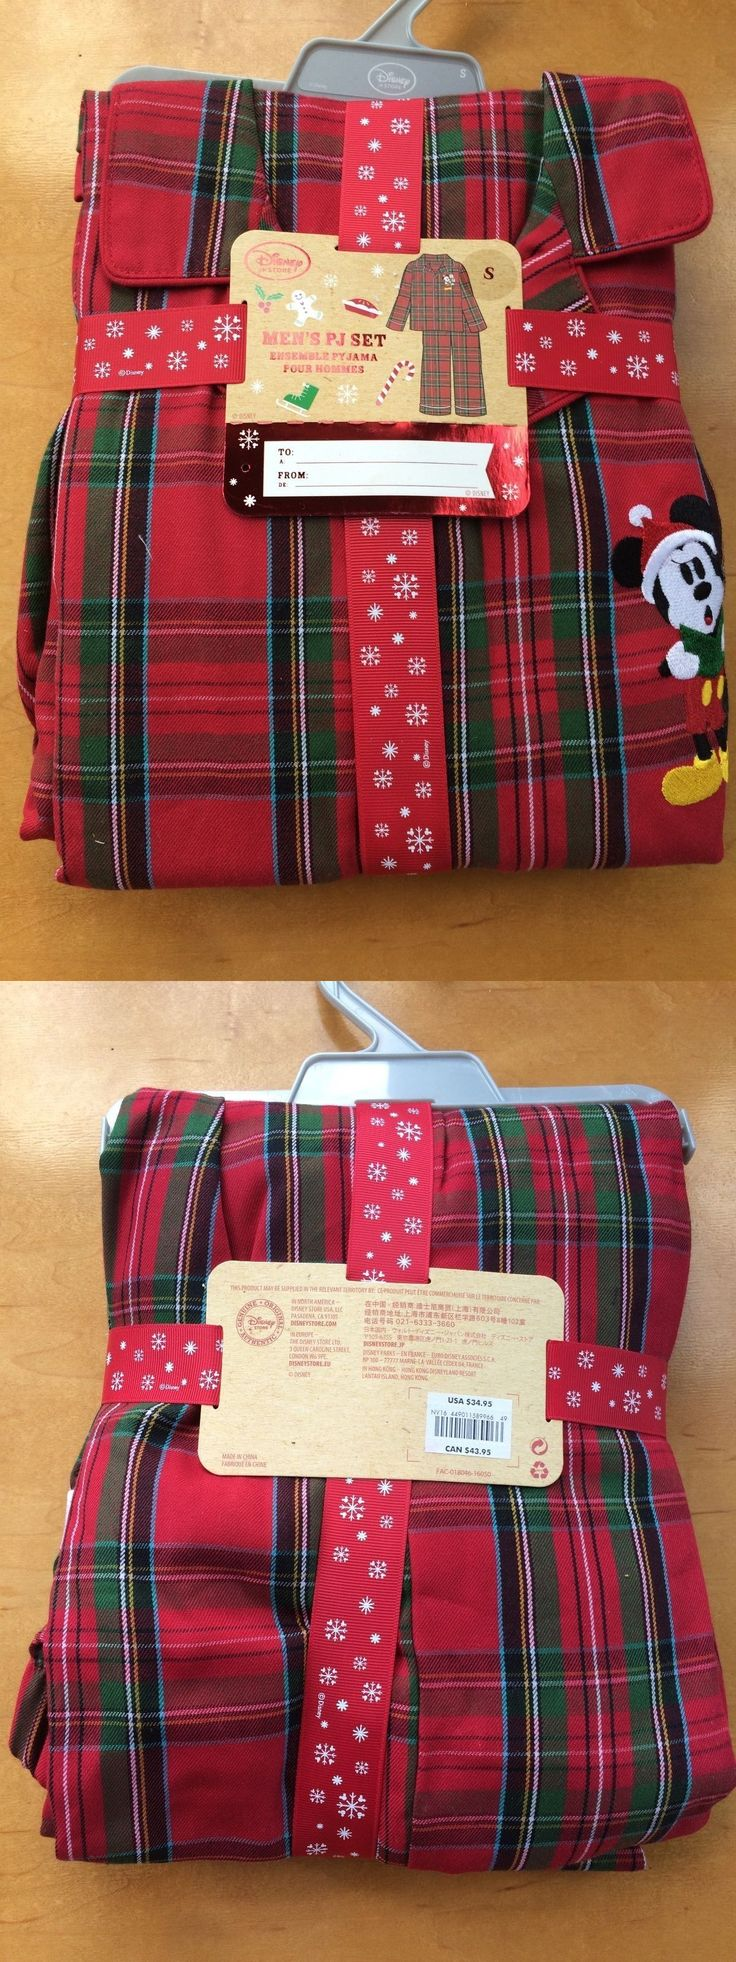 Sleepwear and Robes 11510: Nwt Disney Store Mickey Mouse Christmas Plaid Red Men Pajamas Set Small Medium -> BUY IT NOW ONLY: $35.95 on eBay!